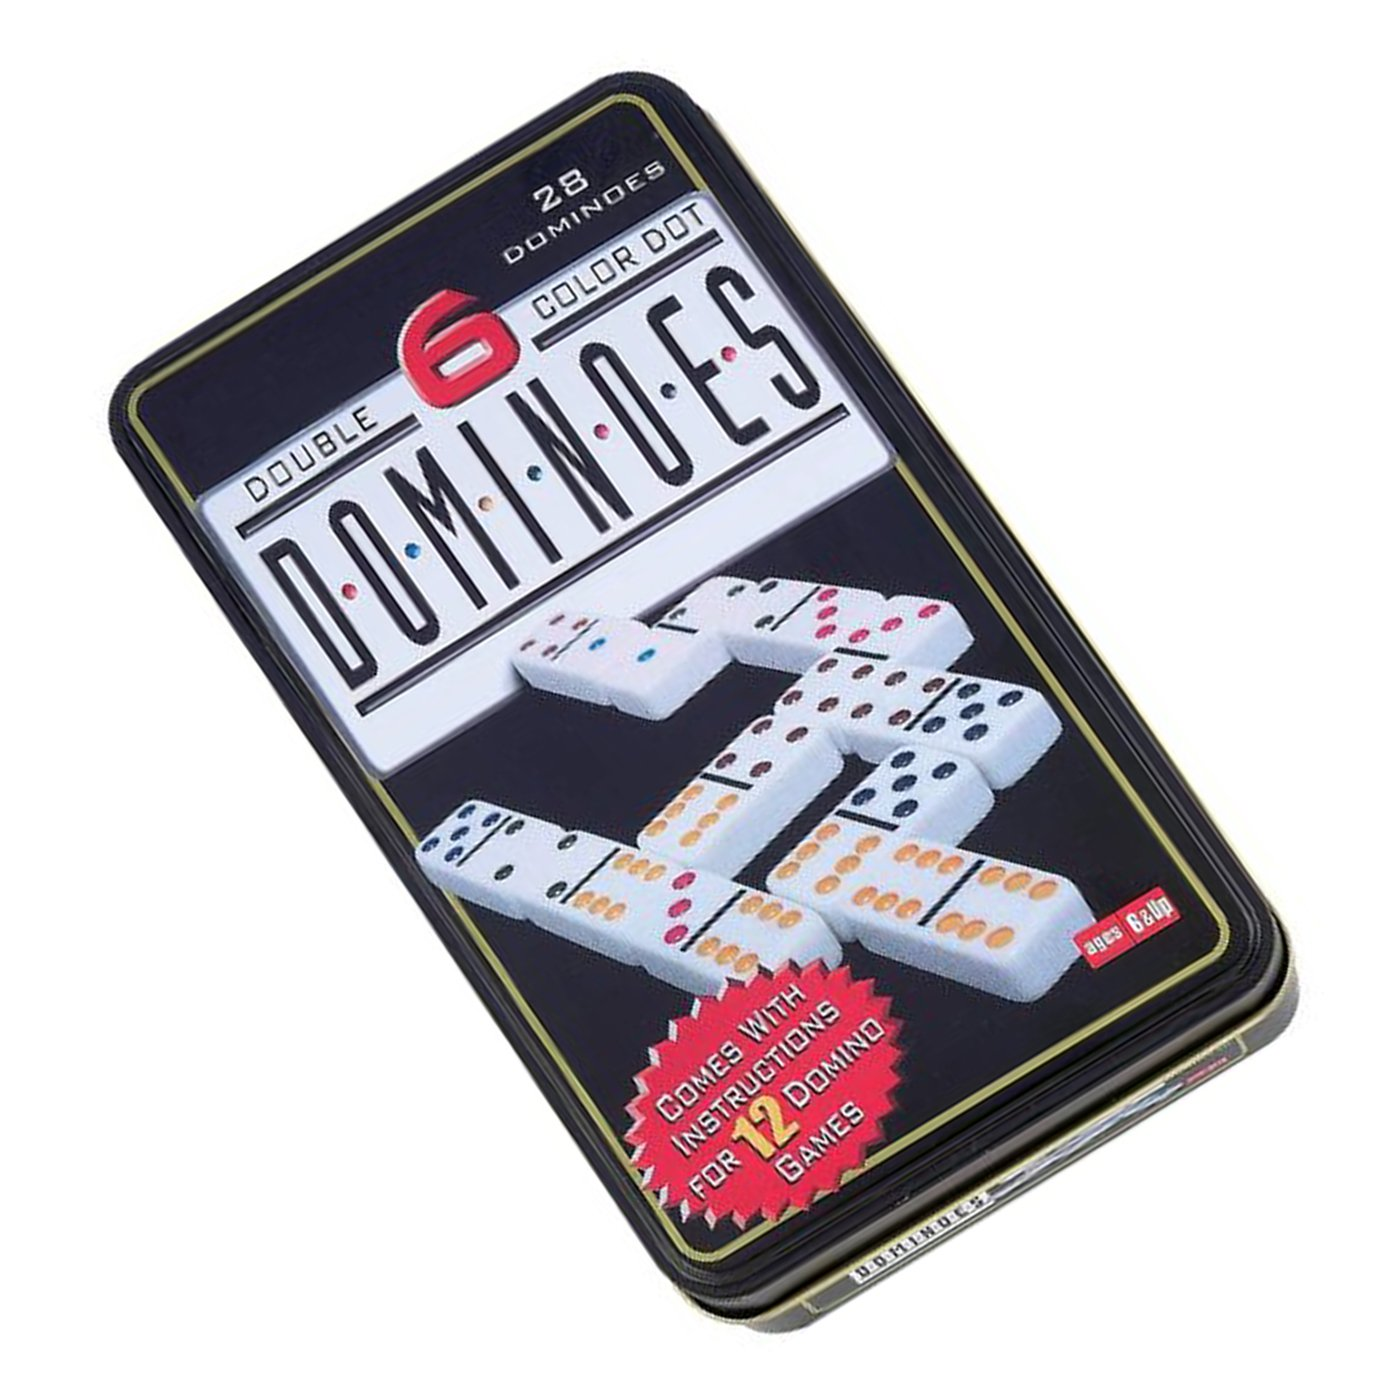 Domino https://amzn.to/2AZvhvF